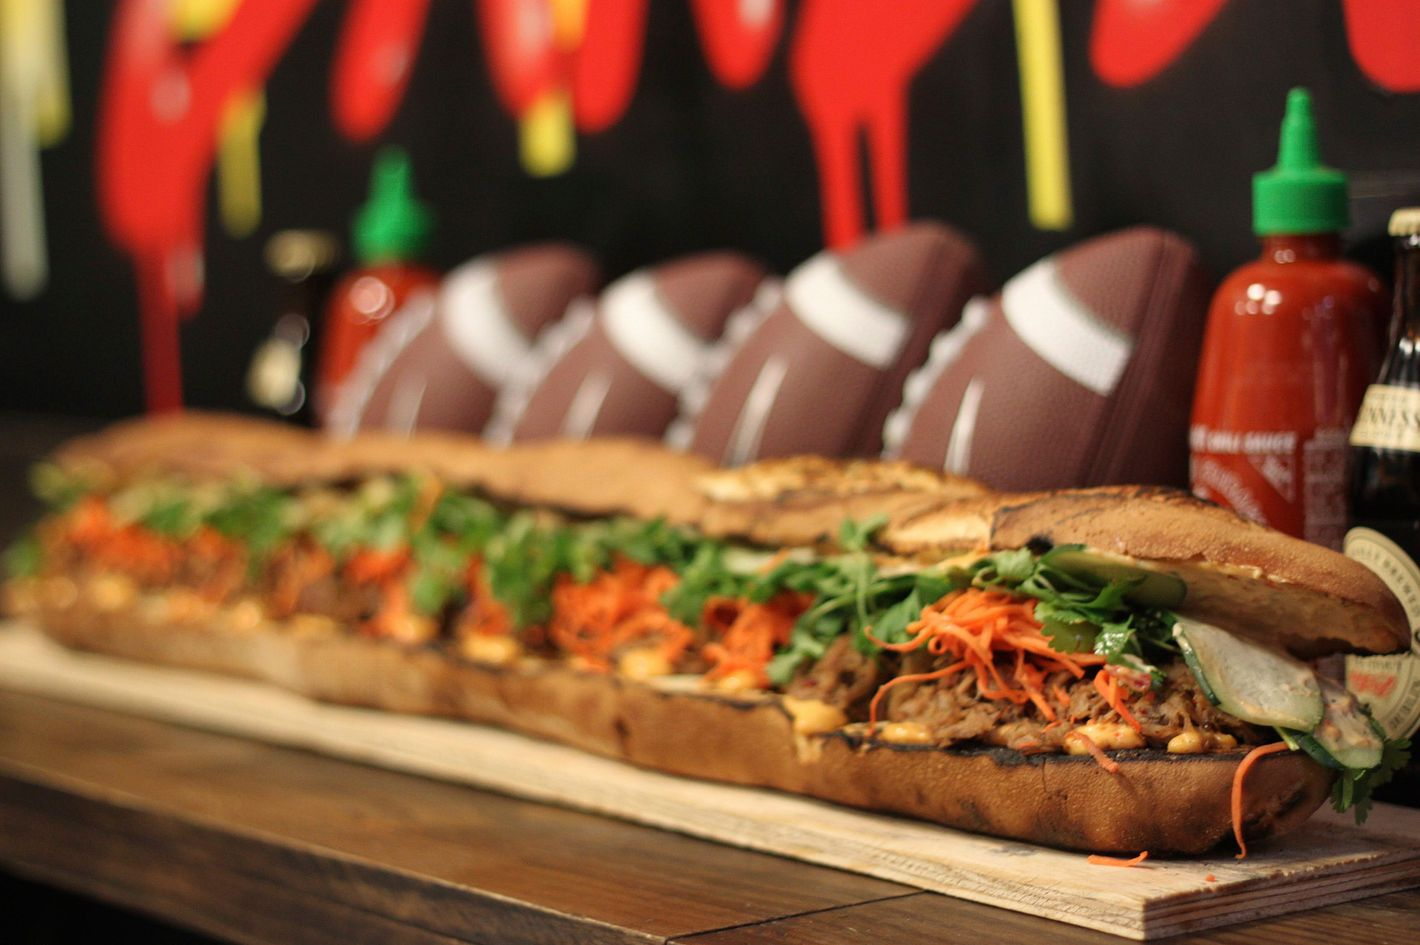 Can we interest you in a three-foot-long Cambodian sub?